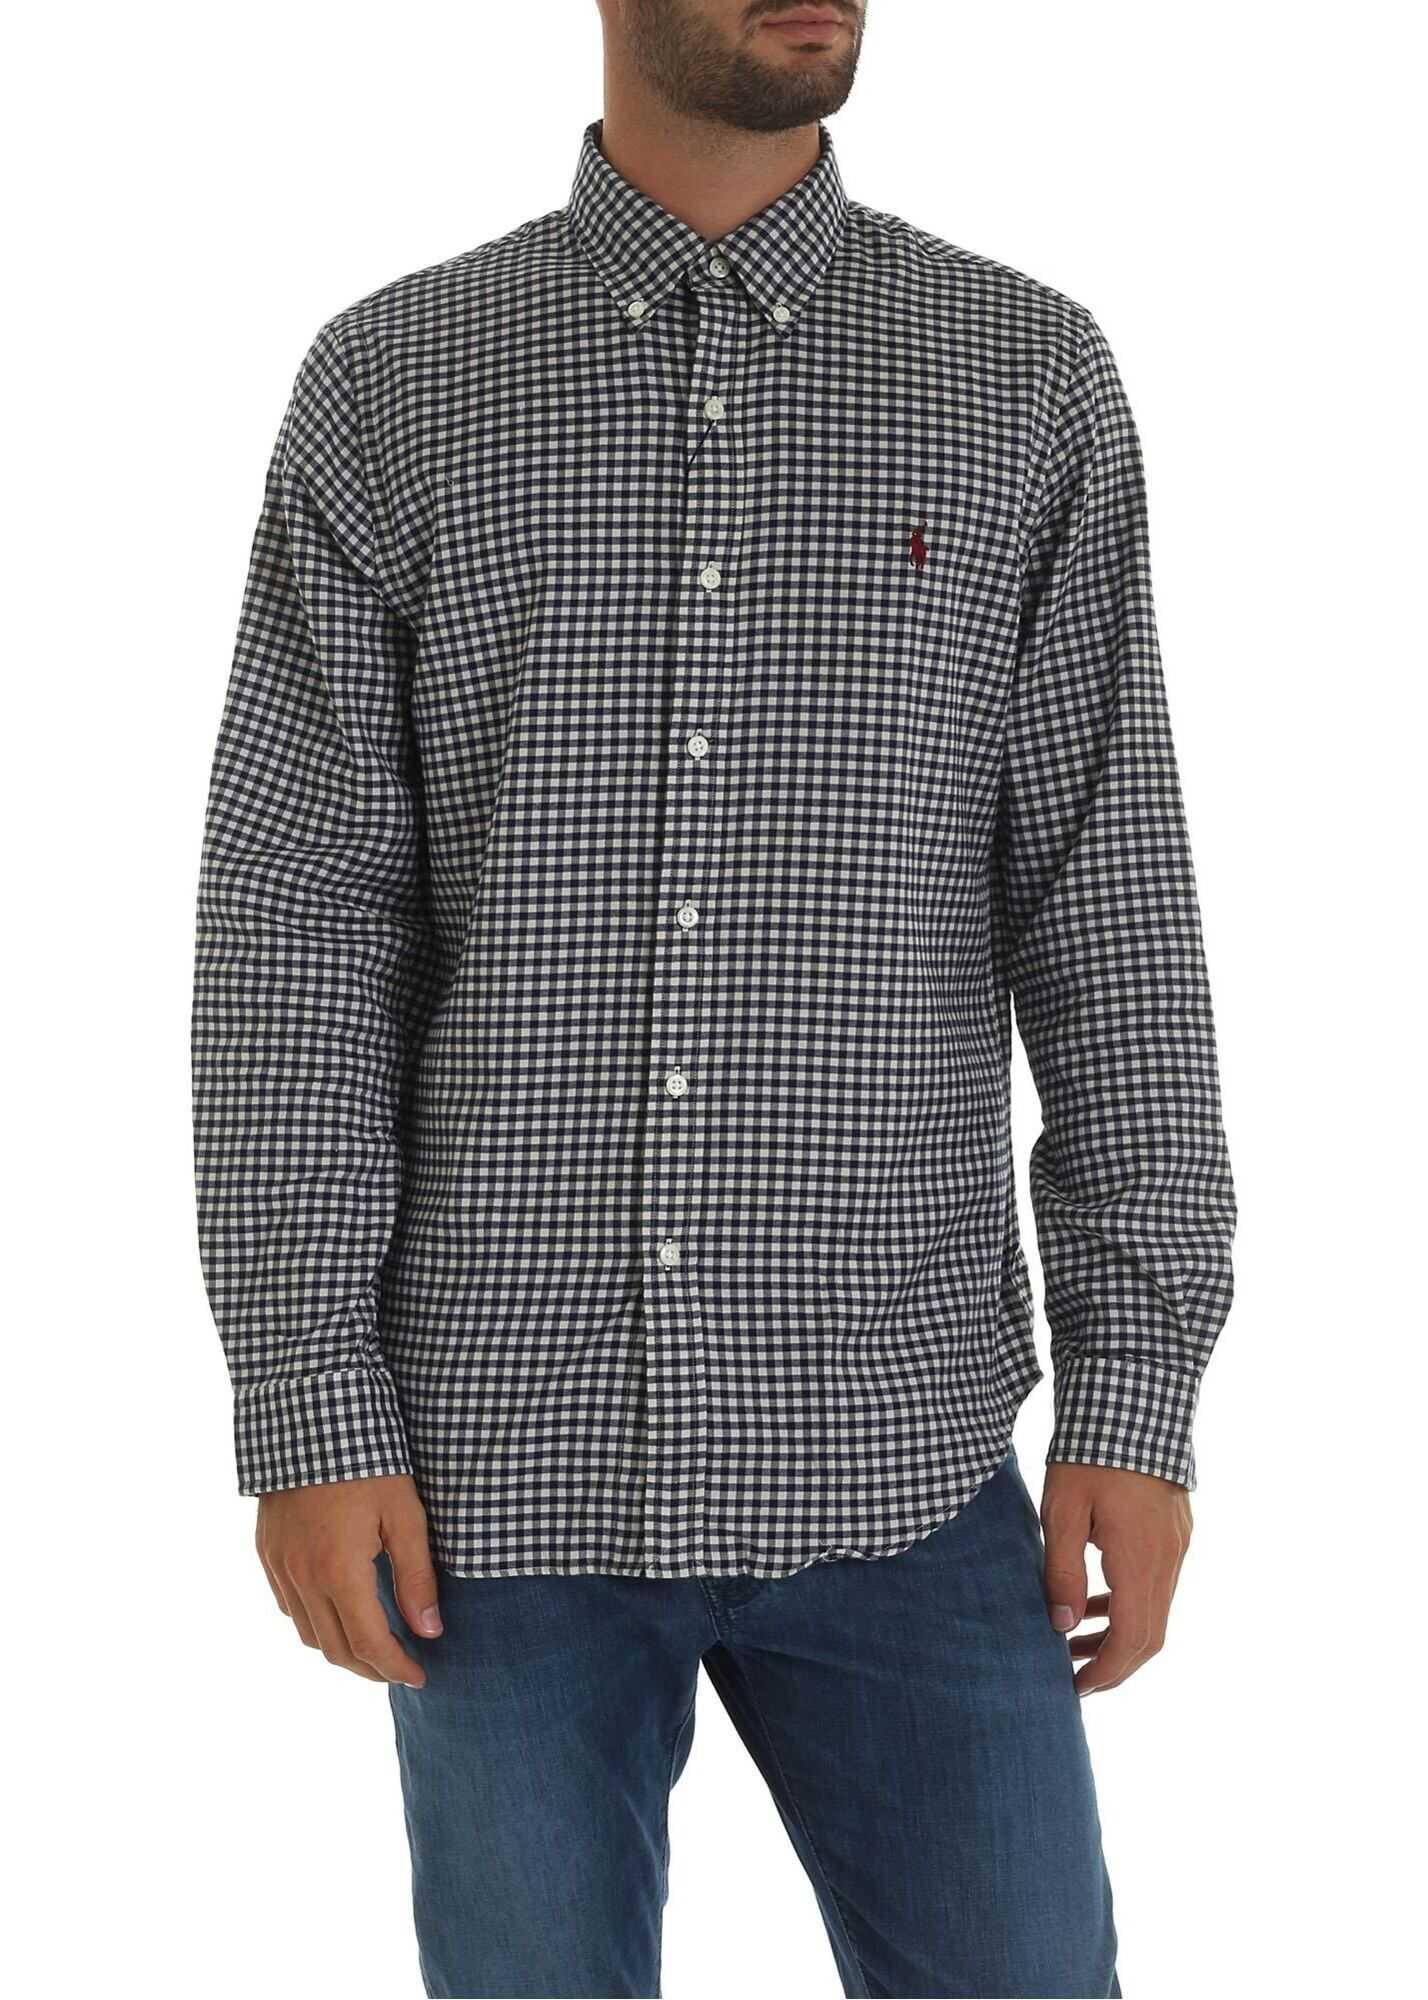 White Shirt With Blue Checkered Pattern thumbnail